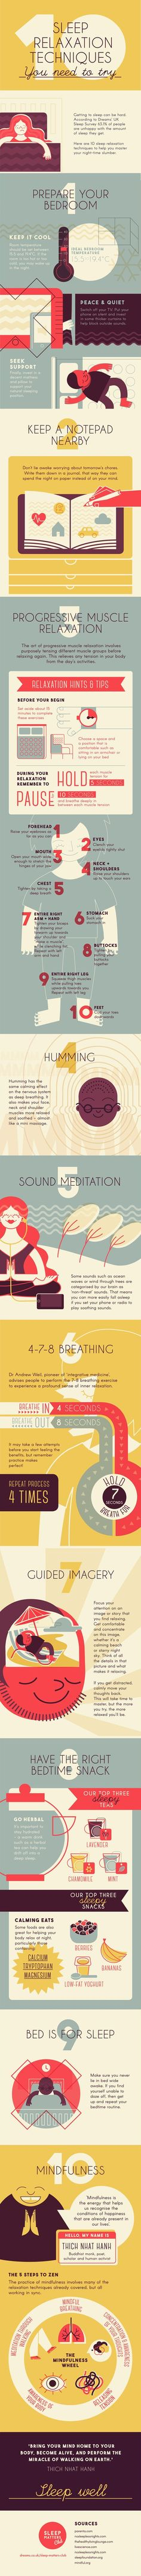 Health Inspiration 10 Sleep Relaxation Techniques You May Not Have Heard Of - Did you know that a lot of mindfulness and meditation practices can help you snooze? Here are 10 sleep relaxation techniques to try. Insomnia Causes, Insomnia Remedies, Sleep Remedies, Insomnia Help, Severe Insomnia, Sleep Relaxation, Sleep Yoga, Can't Sleep, Relaxation Techniques For Sleep